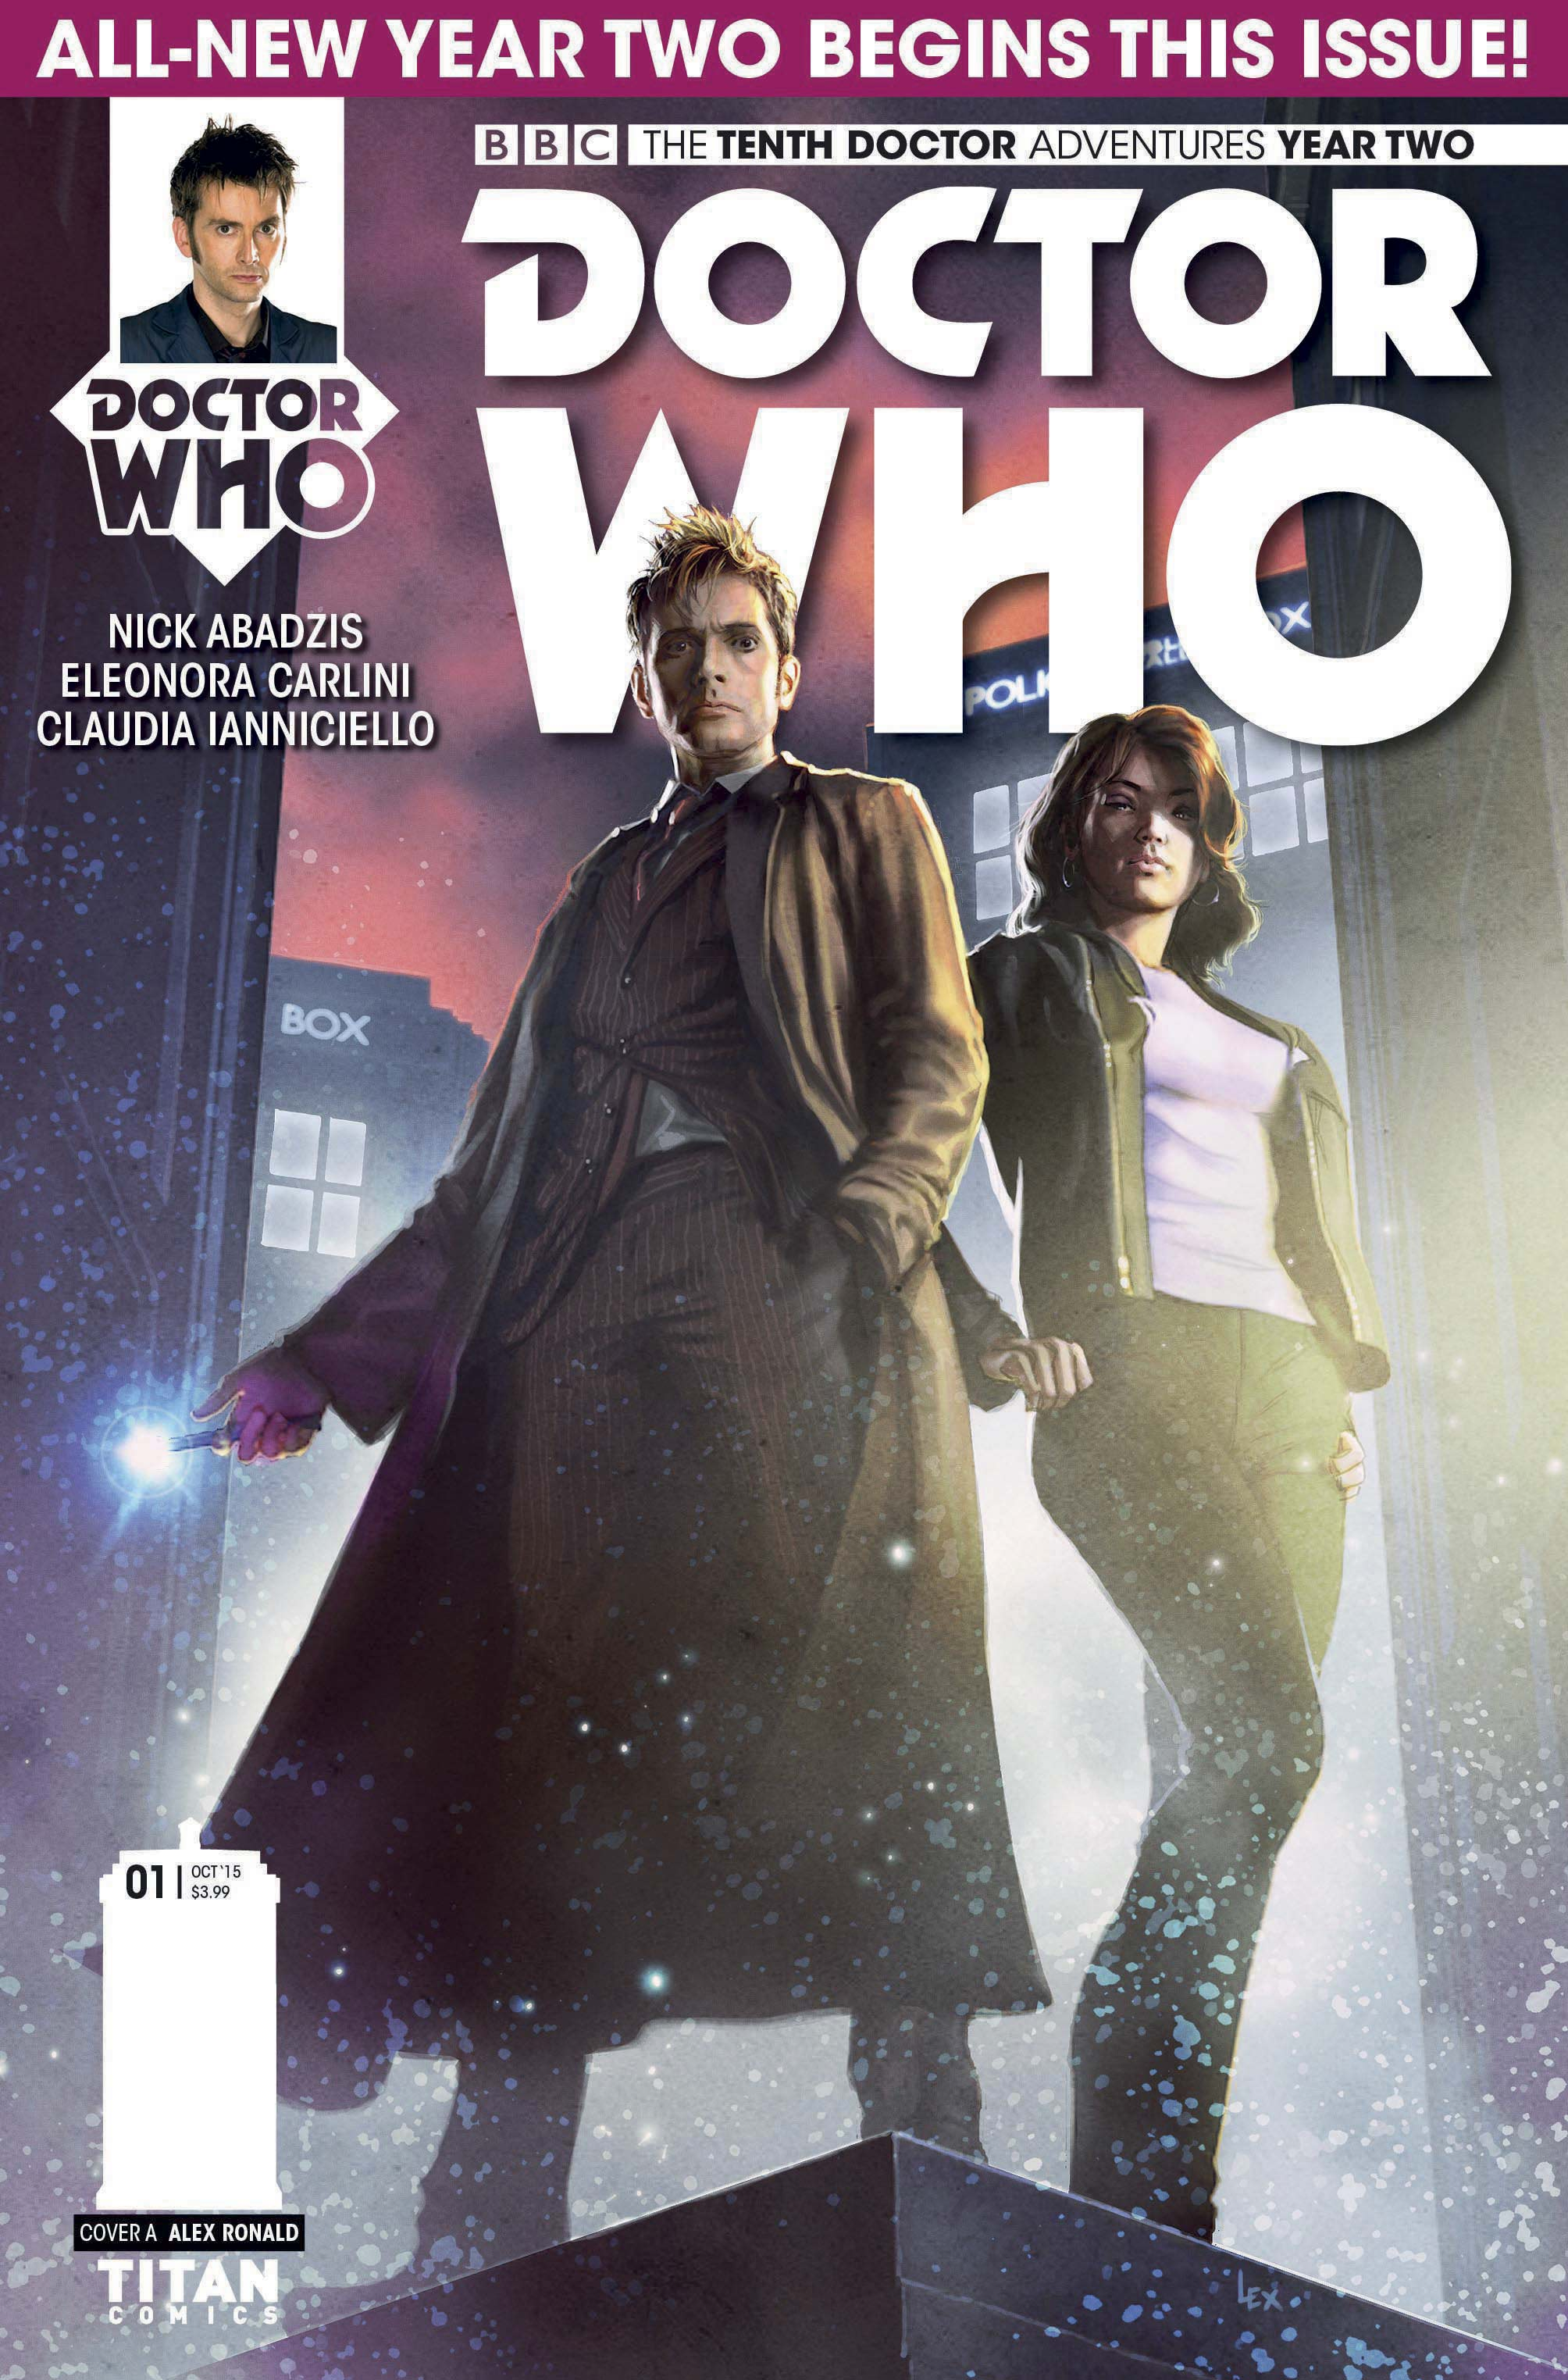 Tenth Doctor - Issue 2.1 (Credit: Titan)